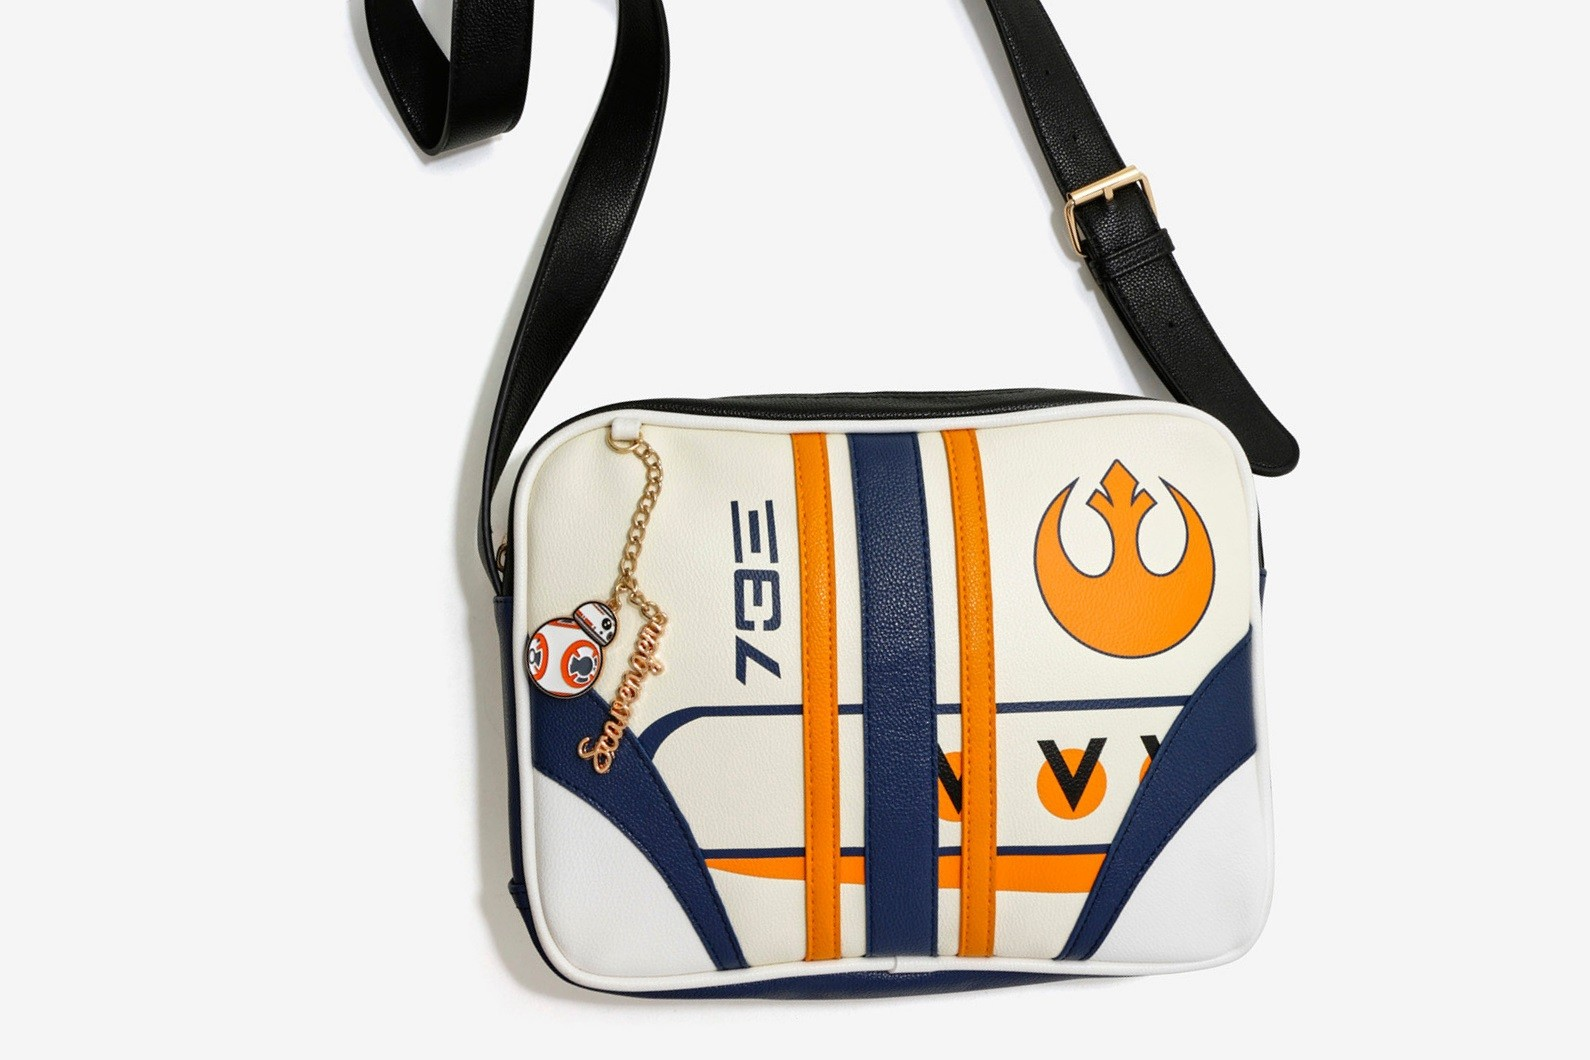 New Rey Rebel bag at Box Lunch